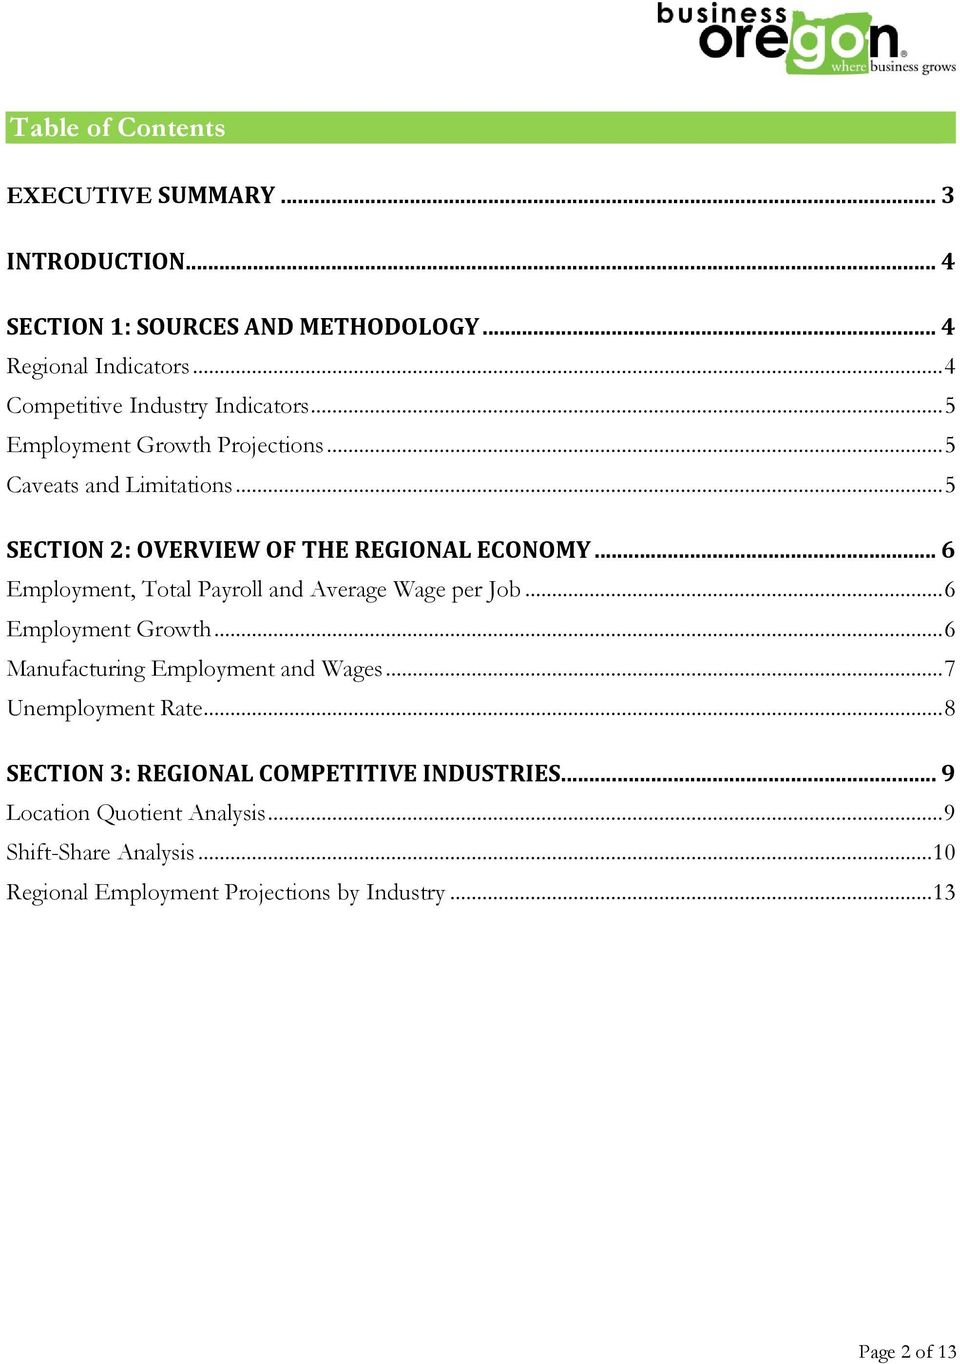 .. 5 SECTION 2: OVERVIEW OF THE REGIONAL ECONOMY... 6, Total Payroll and Average Wage per Job... 6 Growth... 6 Manufacturing and Wages.